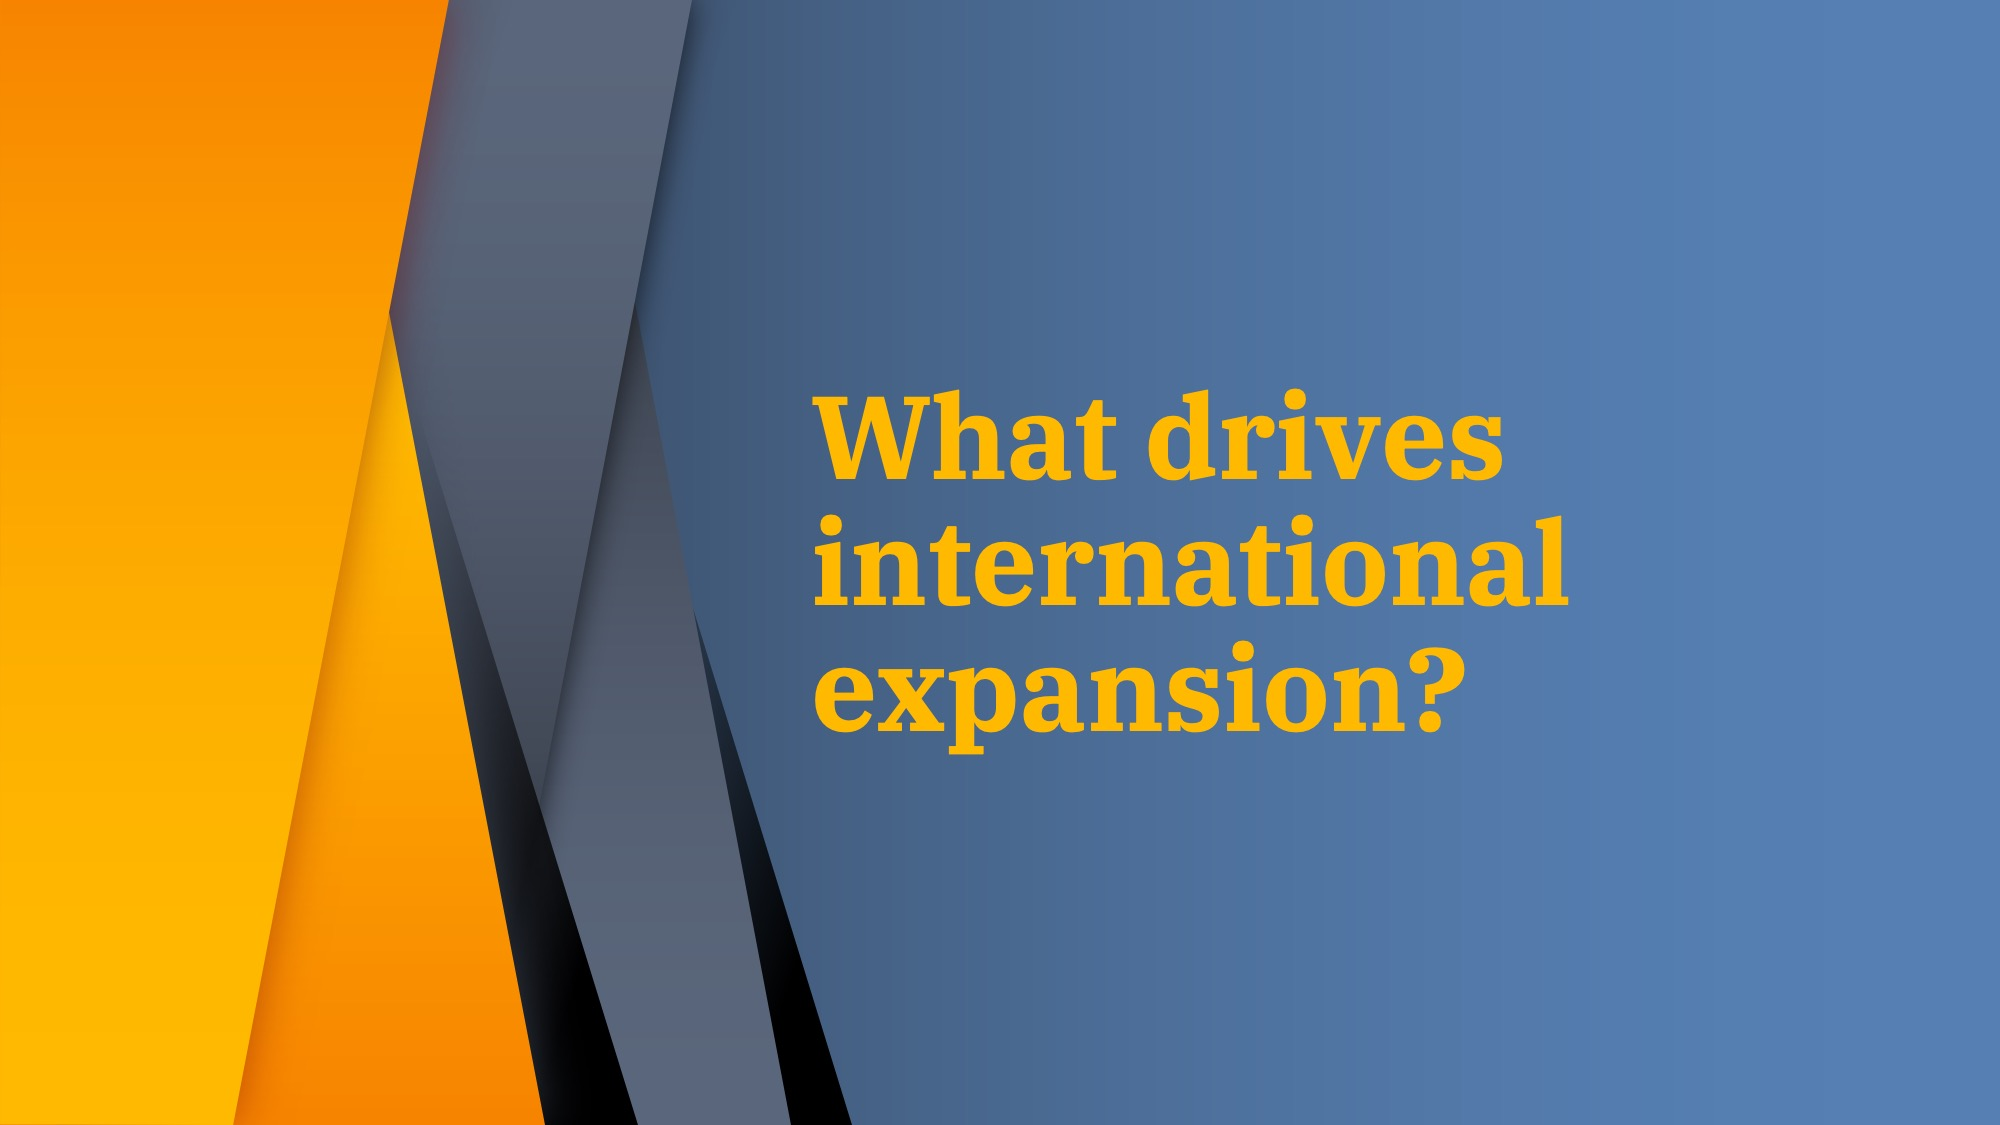 What drives international expansion?